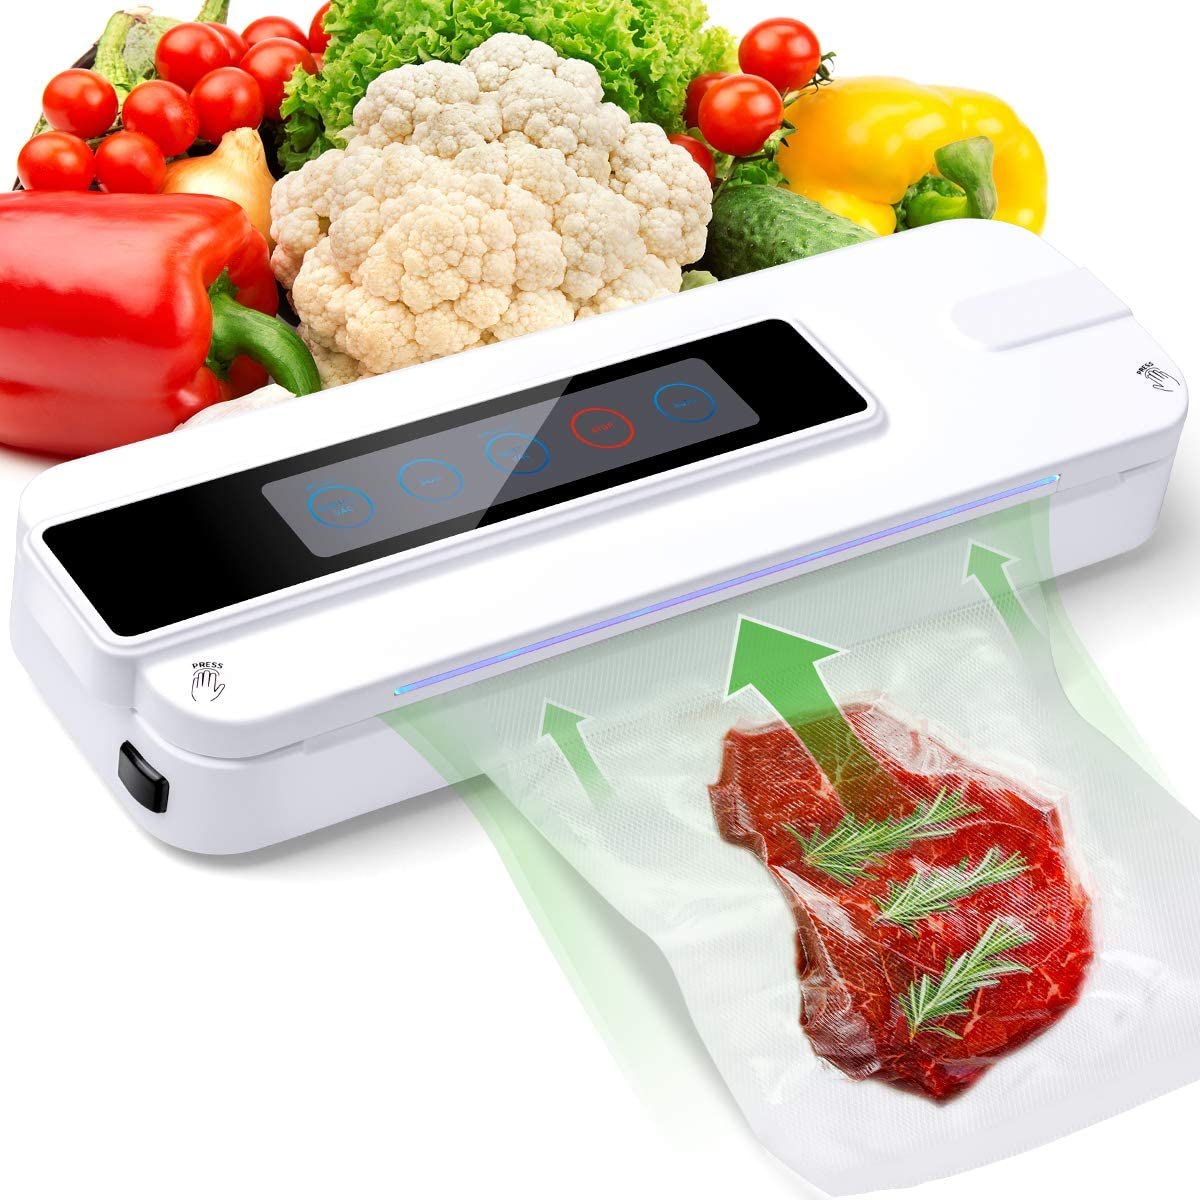 Food Vacuum SealingMachine Touch Automatic Fresh Food Sealing Machine with 10 Sealed Bags,Preserve the Freshness of Vegetables,Meat,Red Wine,Multi Portable Automatic Food Saver Machine for Home-white